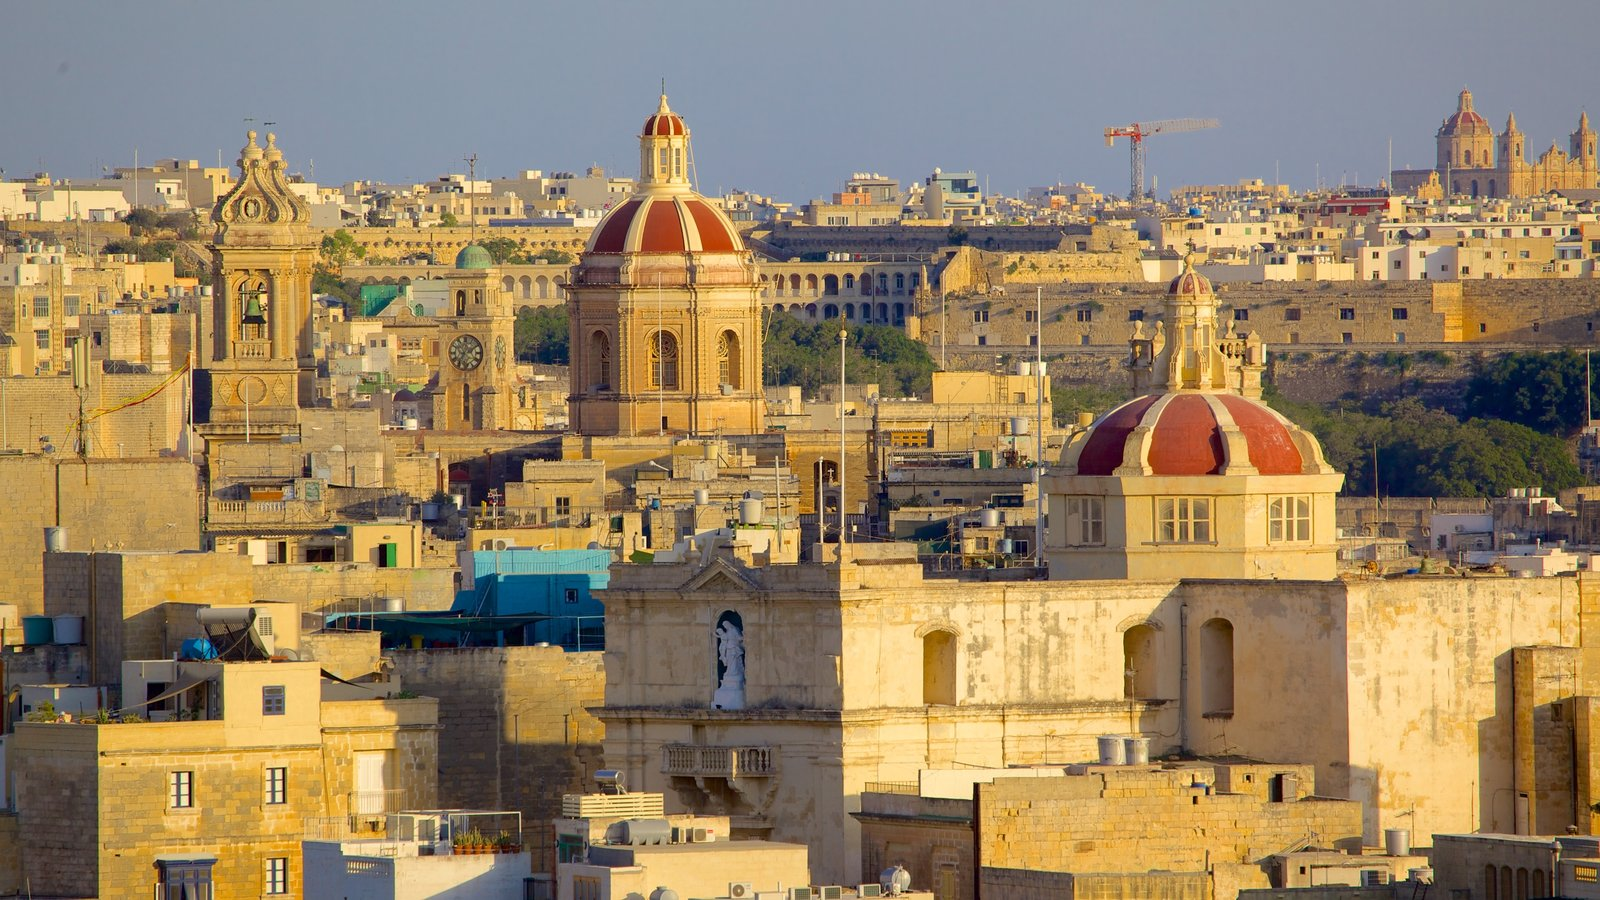 Valletta which includes a city, a sunset and heritage architecture